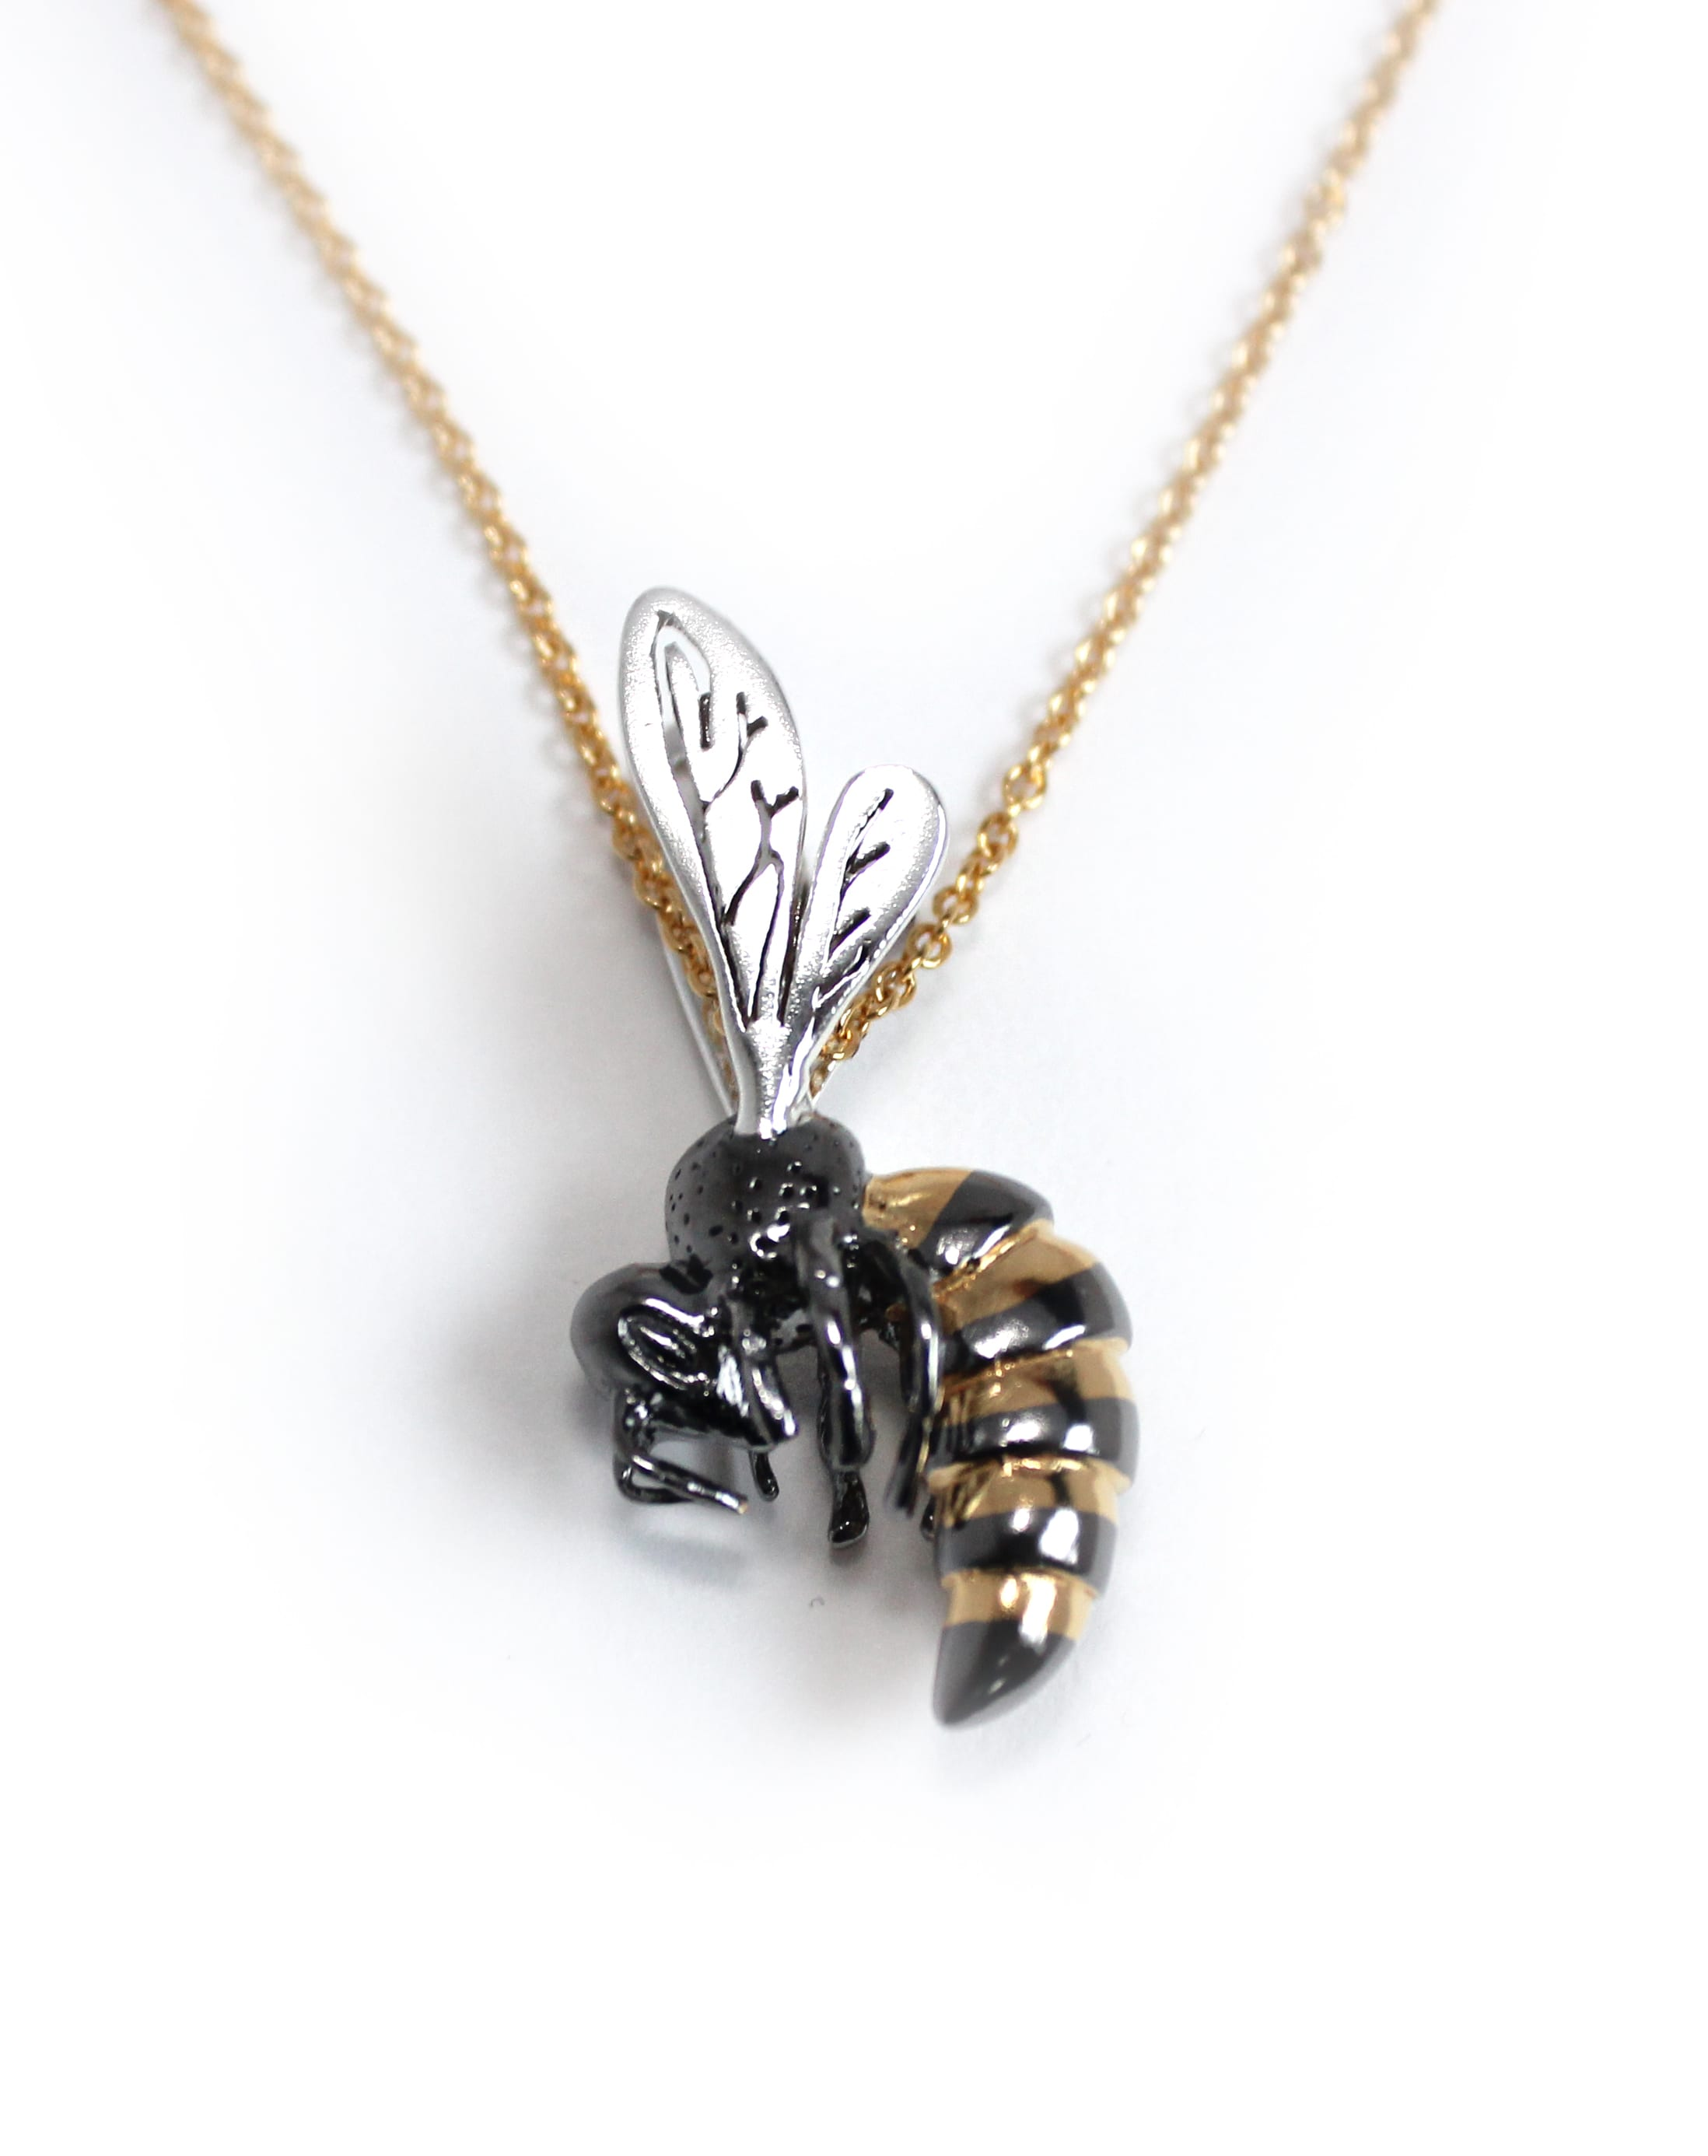 d page suspended and in necklace glass drop bumble the brass rhinestone this bee it mysite chain along s is a golden product pendant made with lovely honey bronze